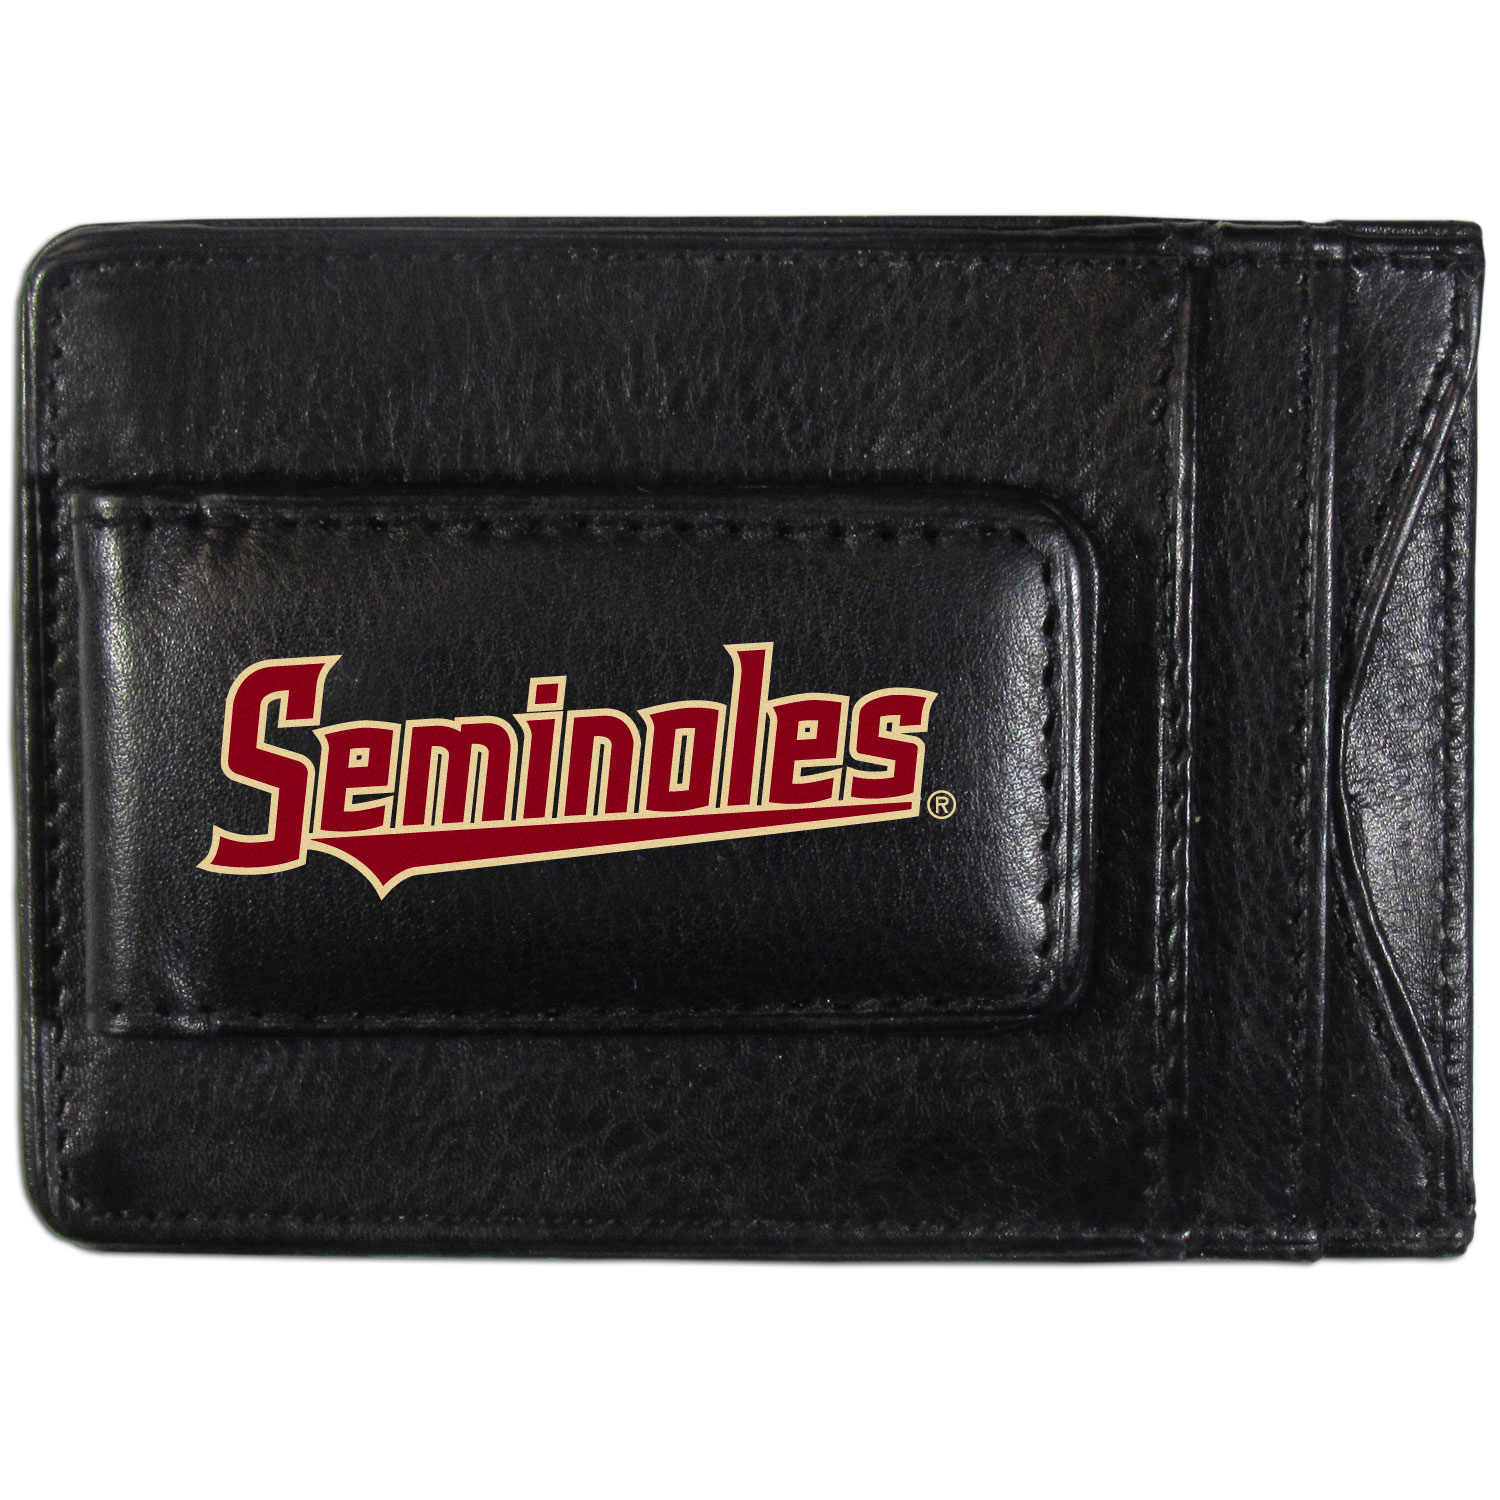 Florida St. Seminoles Logo Leather Cash and Cardholder - This super slim leather wallet lets you have all the benefits of a money clip while keeping the organization of a wallet. On one side of this front pocket wallet there is a strong, magnetic money clip to keep your cash easily accessible and the?Florida St. Seminoles team logo on the front. The versatile men's accessory is a perfect addition to your fan apparel.